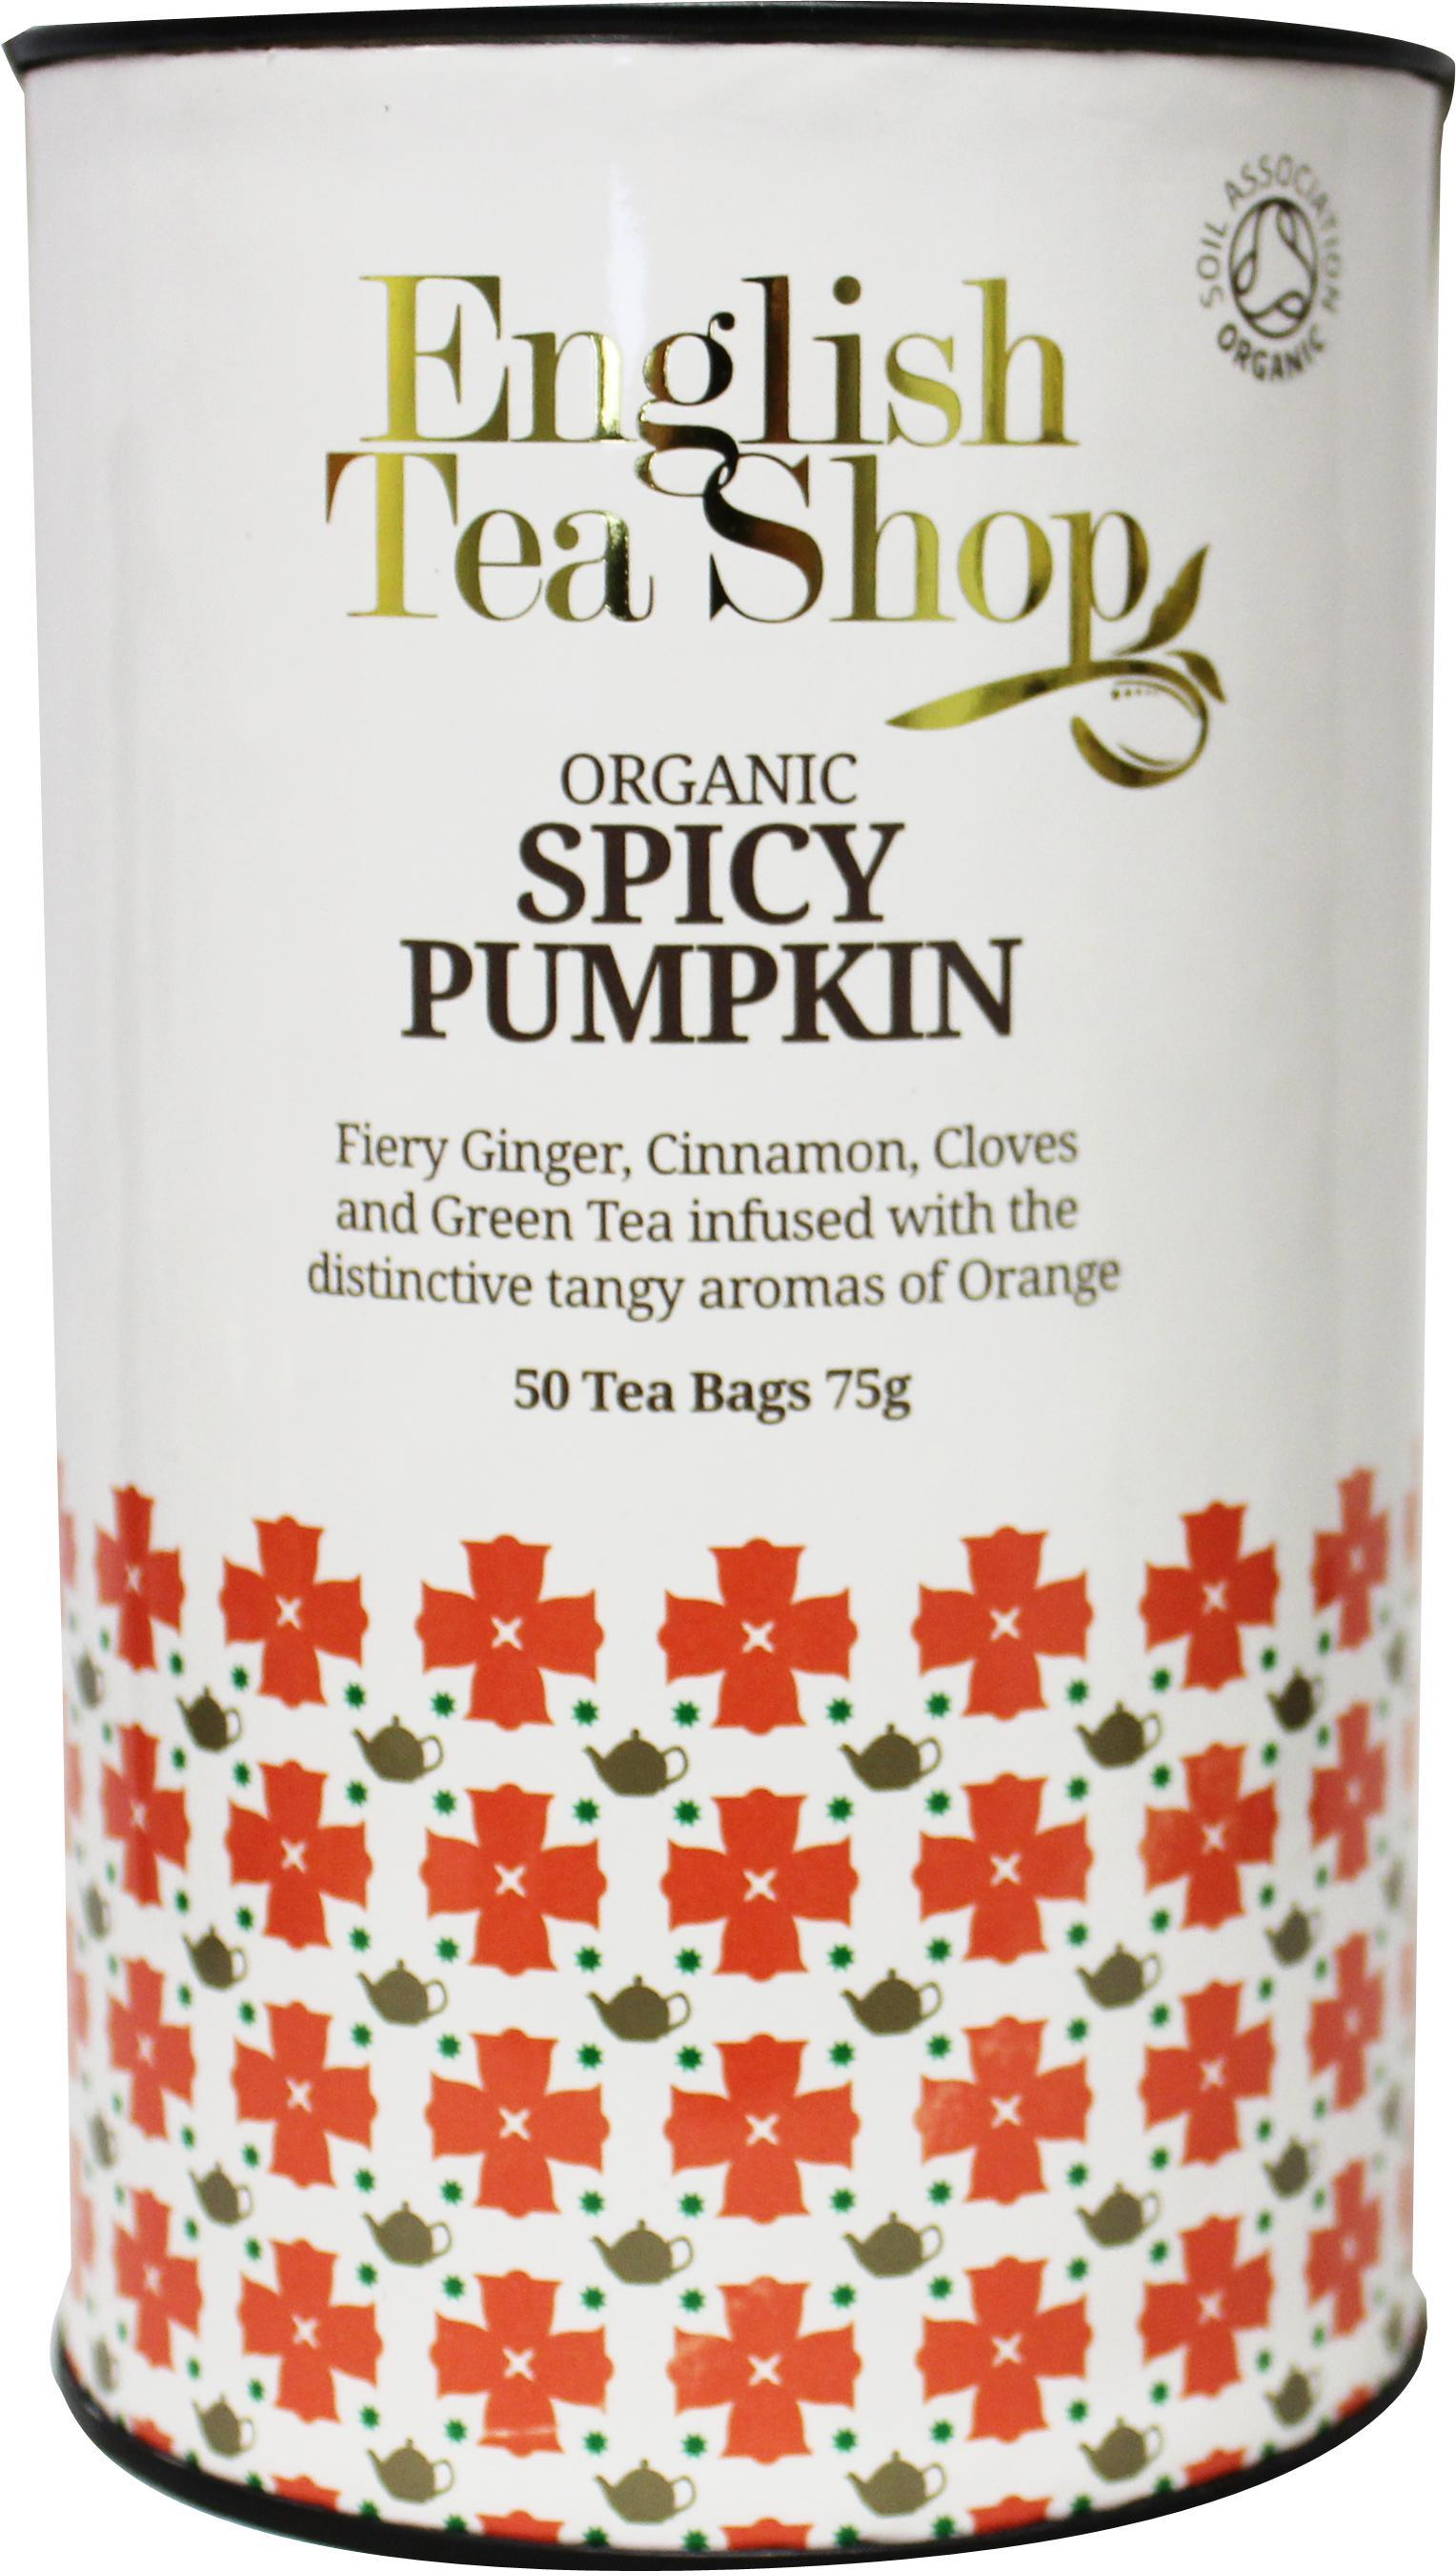 English Tea Shop Spicy Pumpkin Paper Can